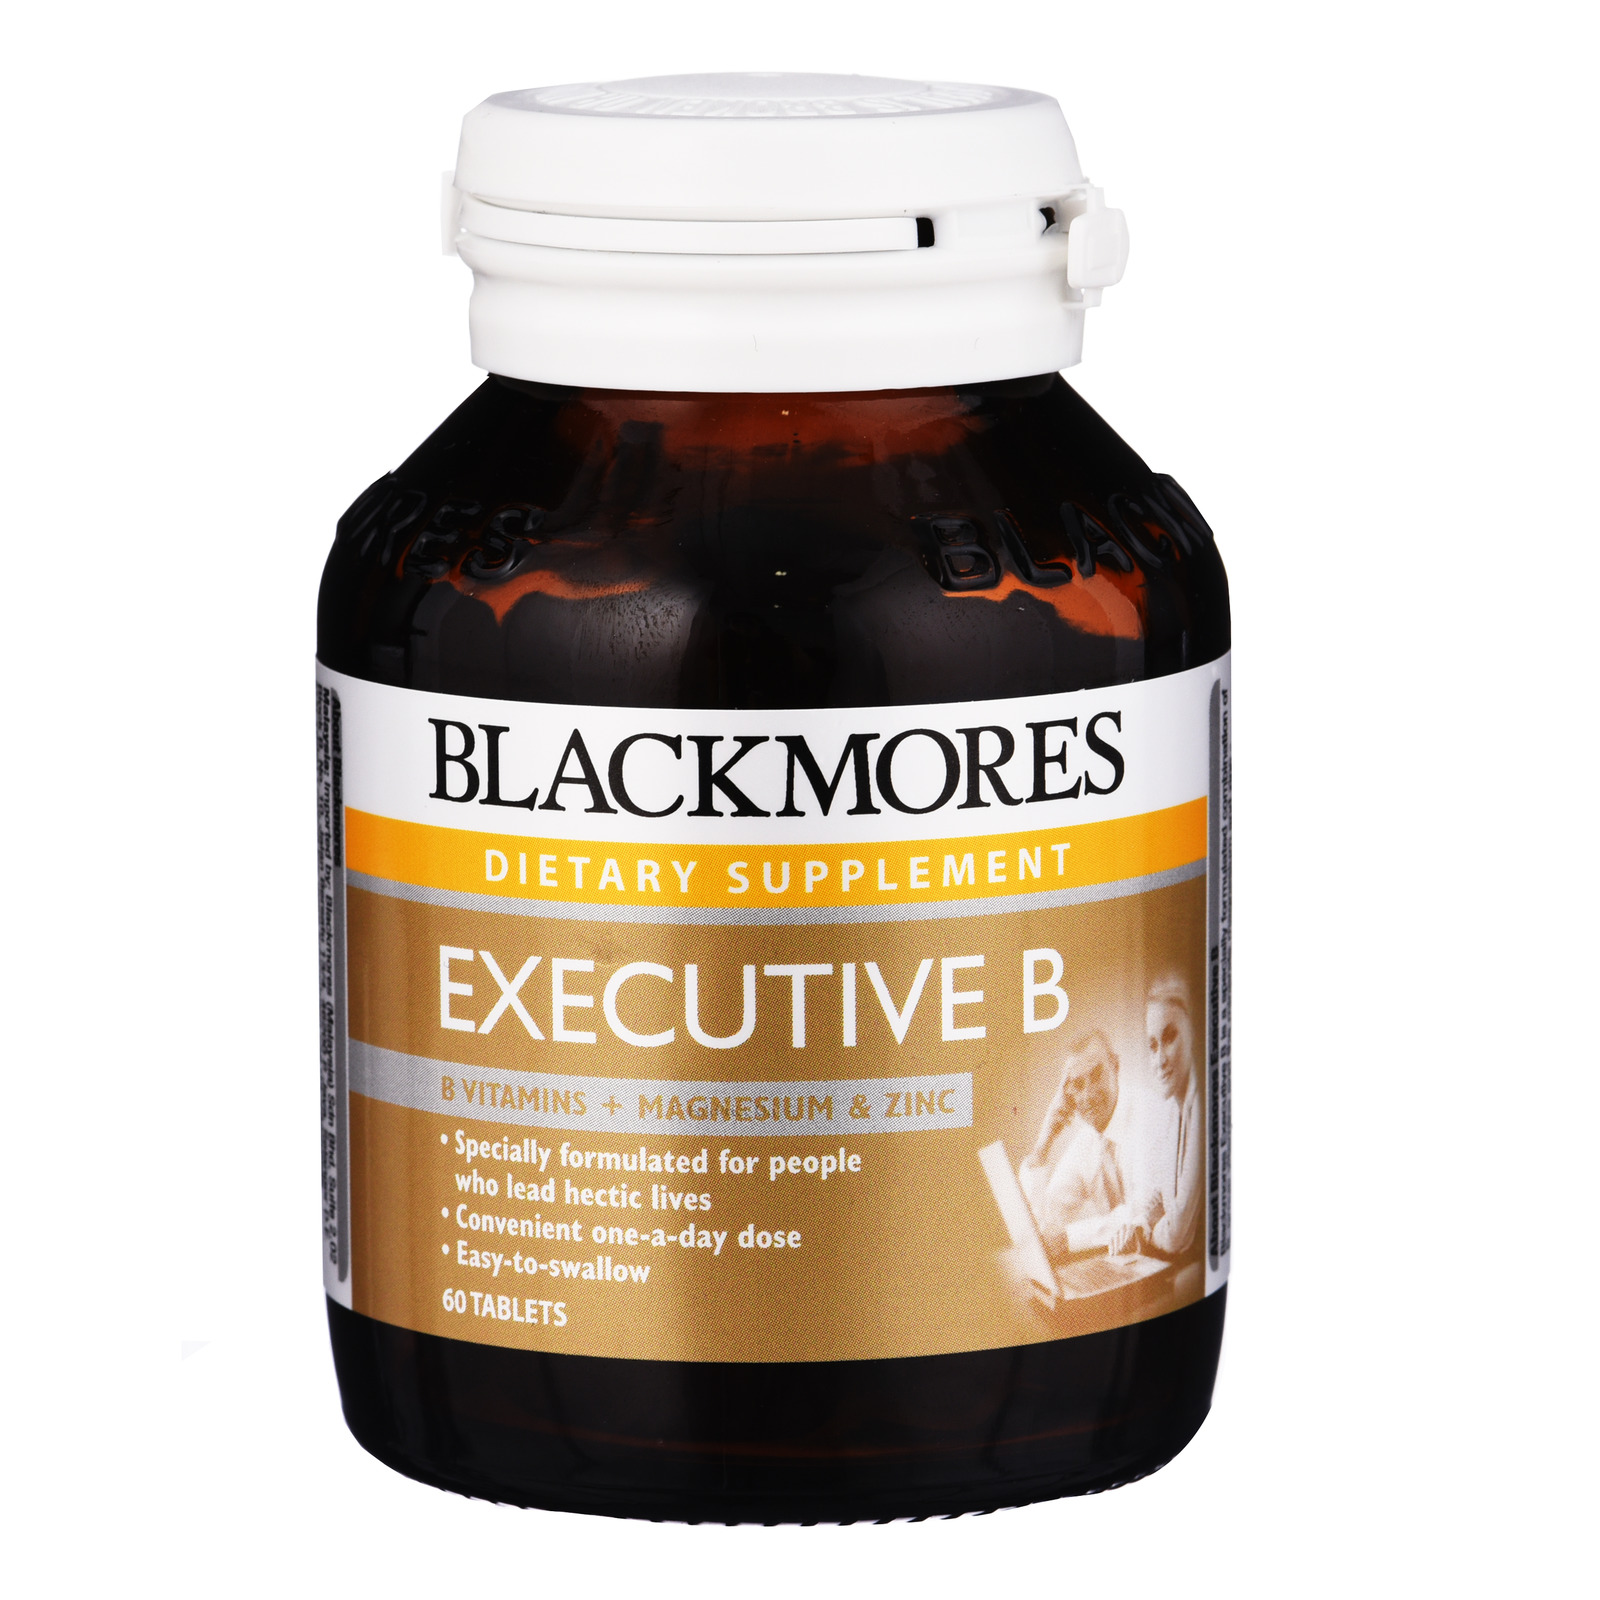 Blackmores Dietary Supplement - Executive B